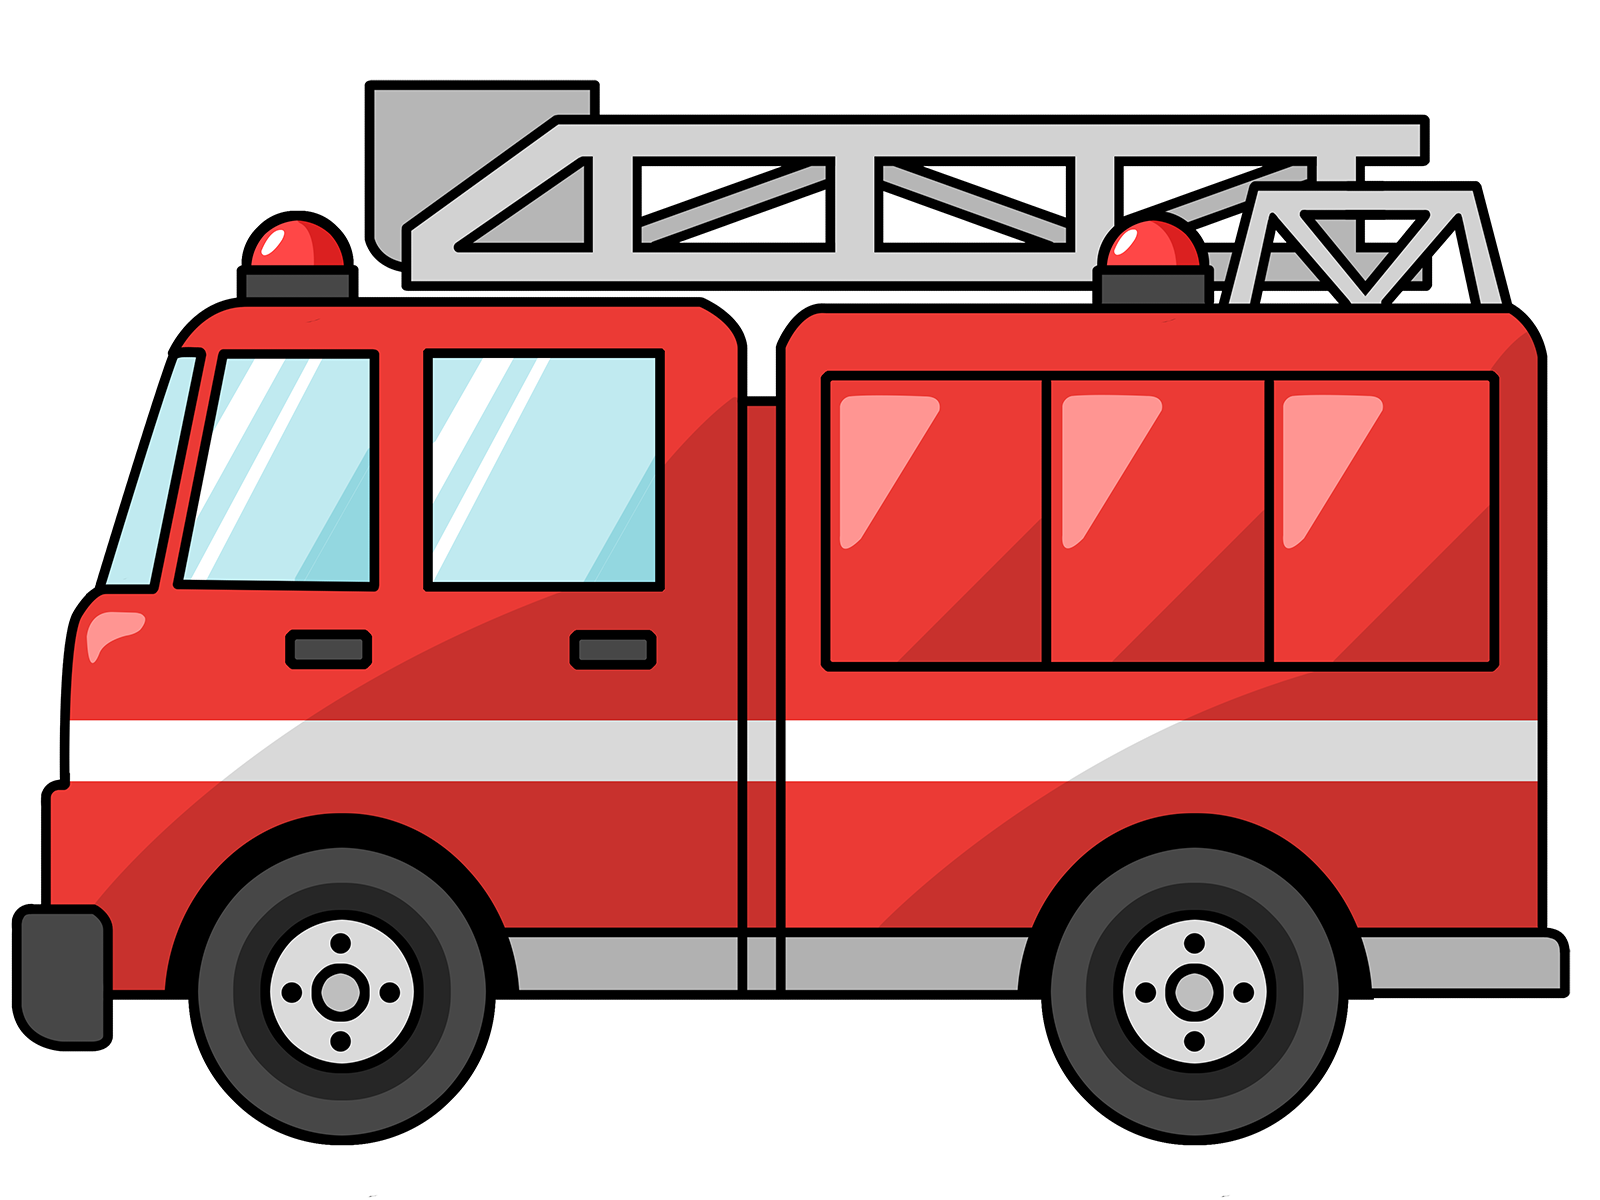 Fire Truck clipart front view Panda Images Clipart Art Clipart